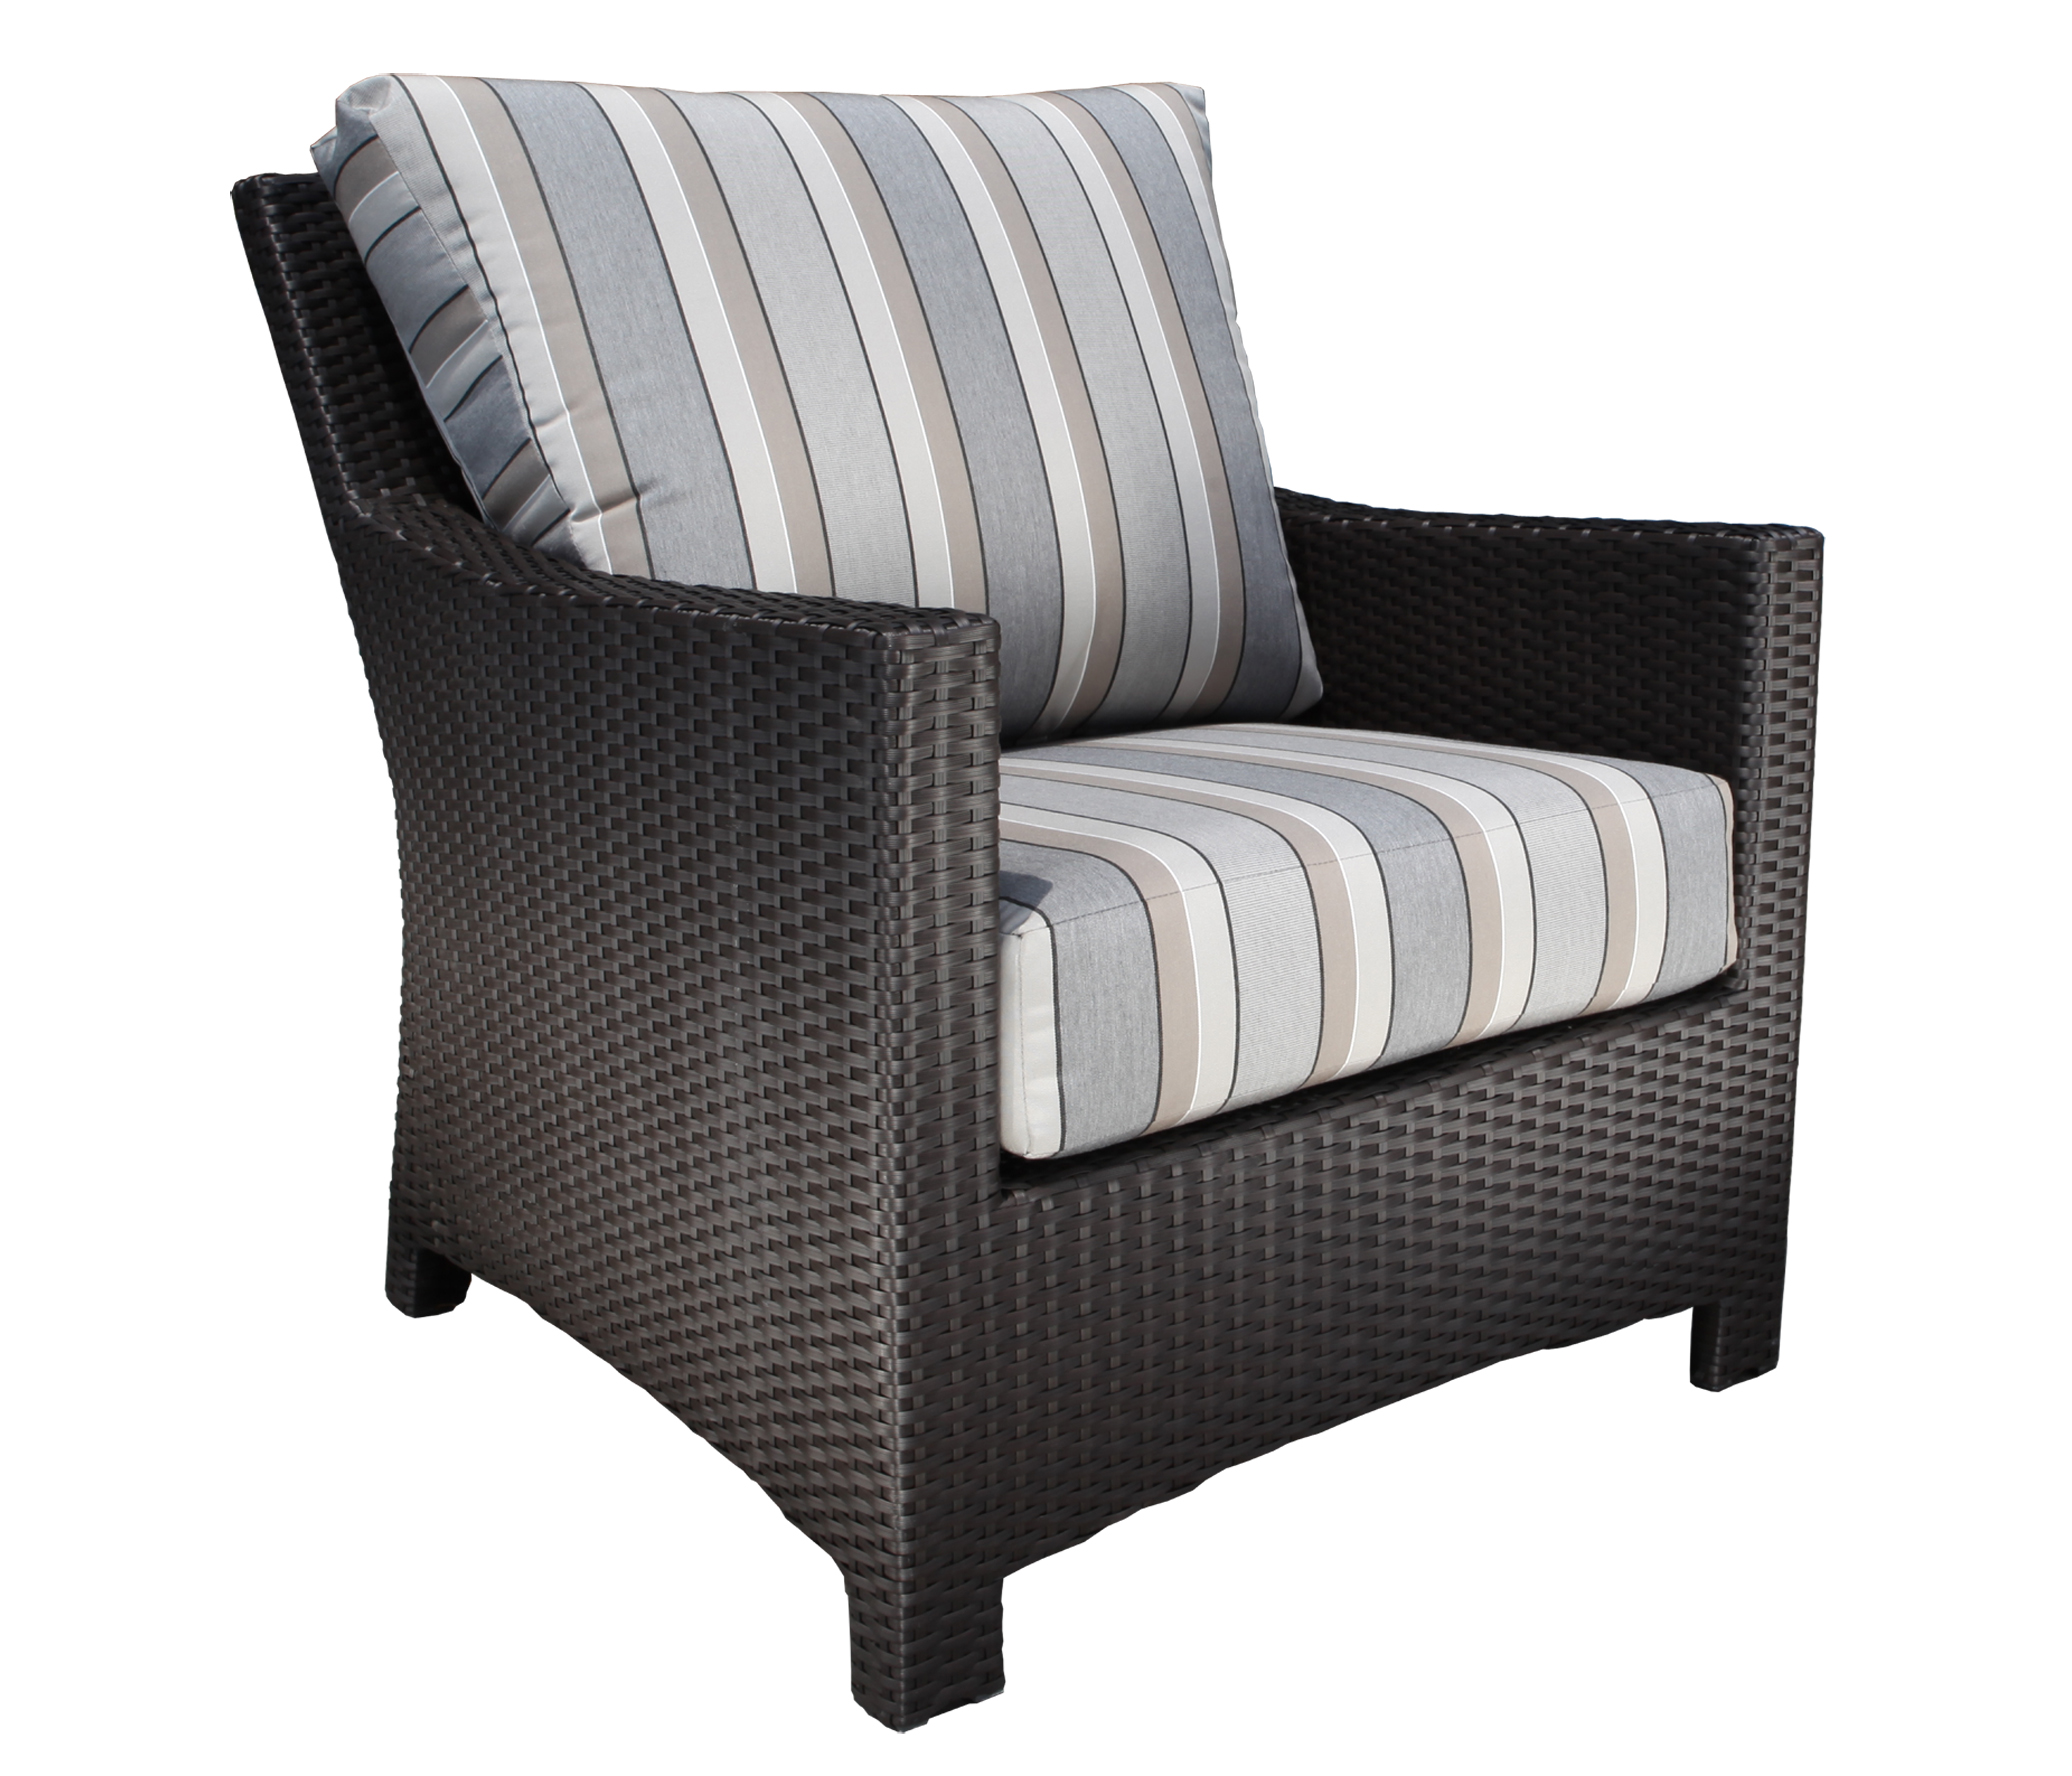 Outdoor Patio Furniture Toronto: Flight Wicker Deep Seating Chair